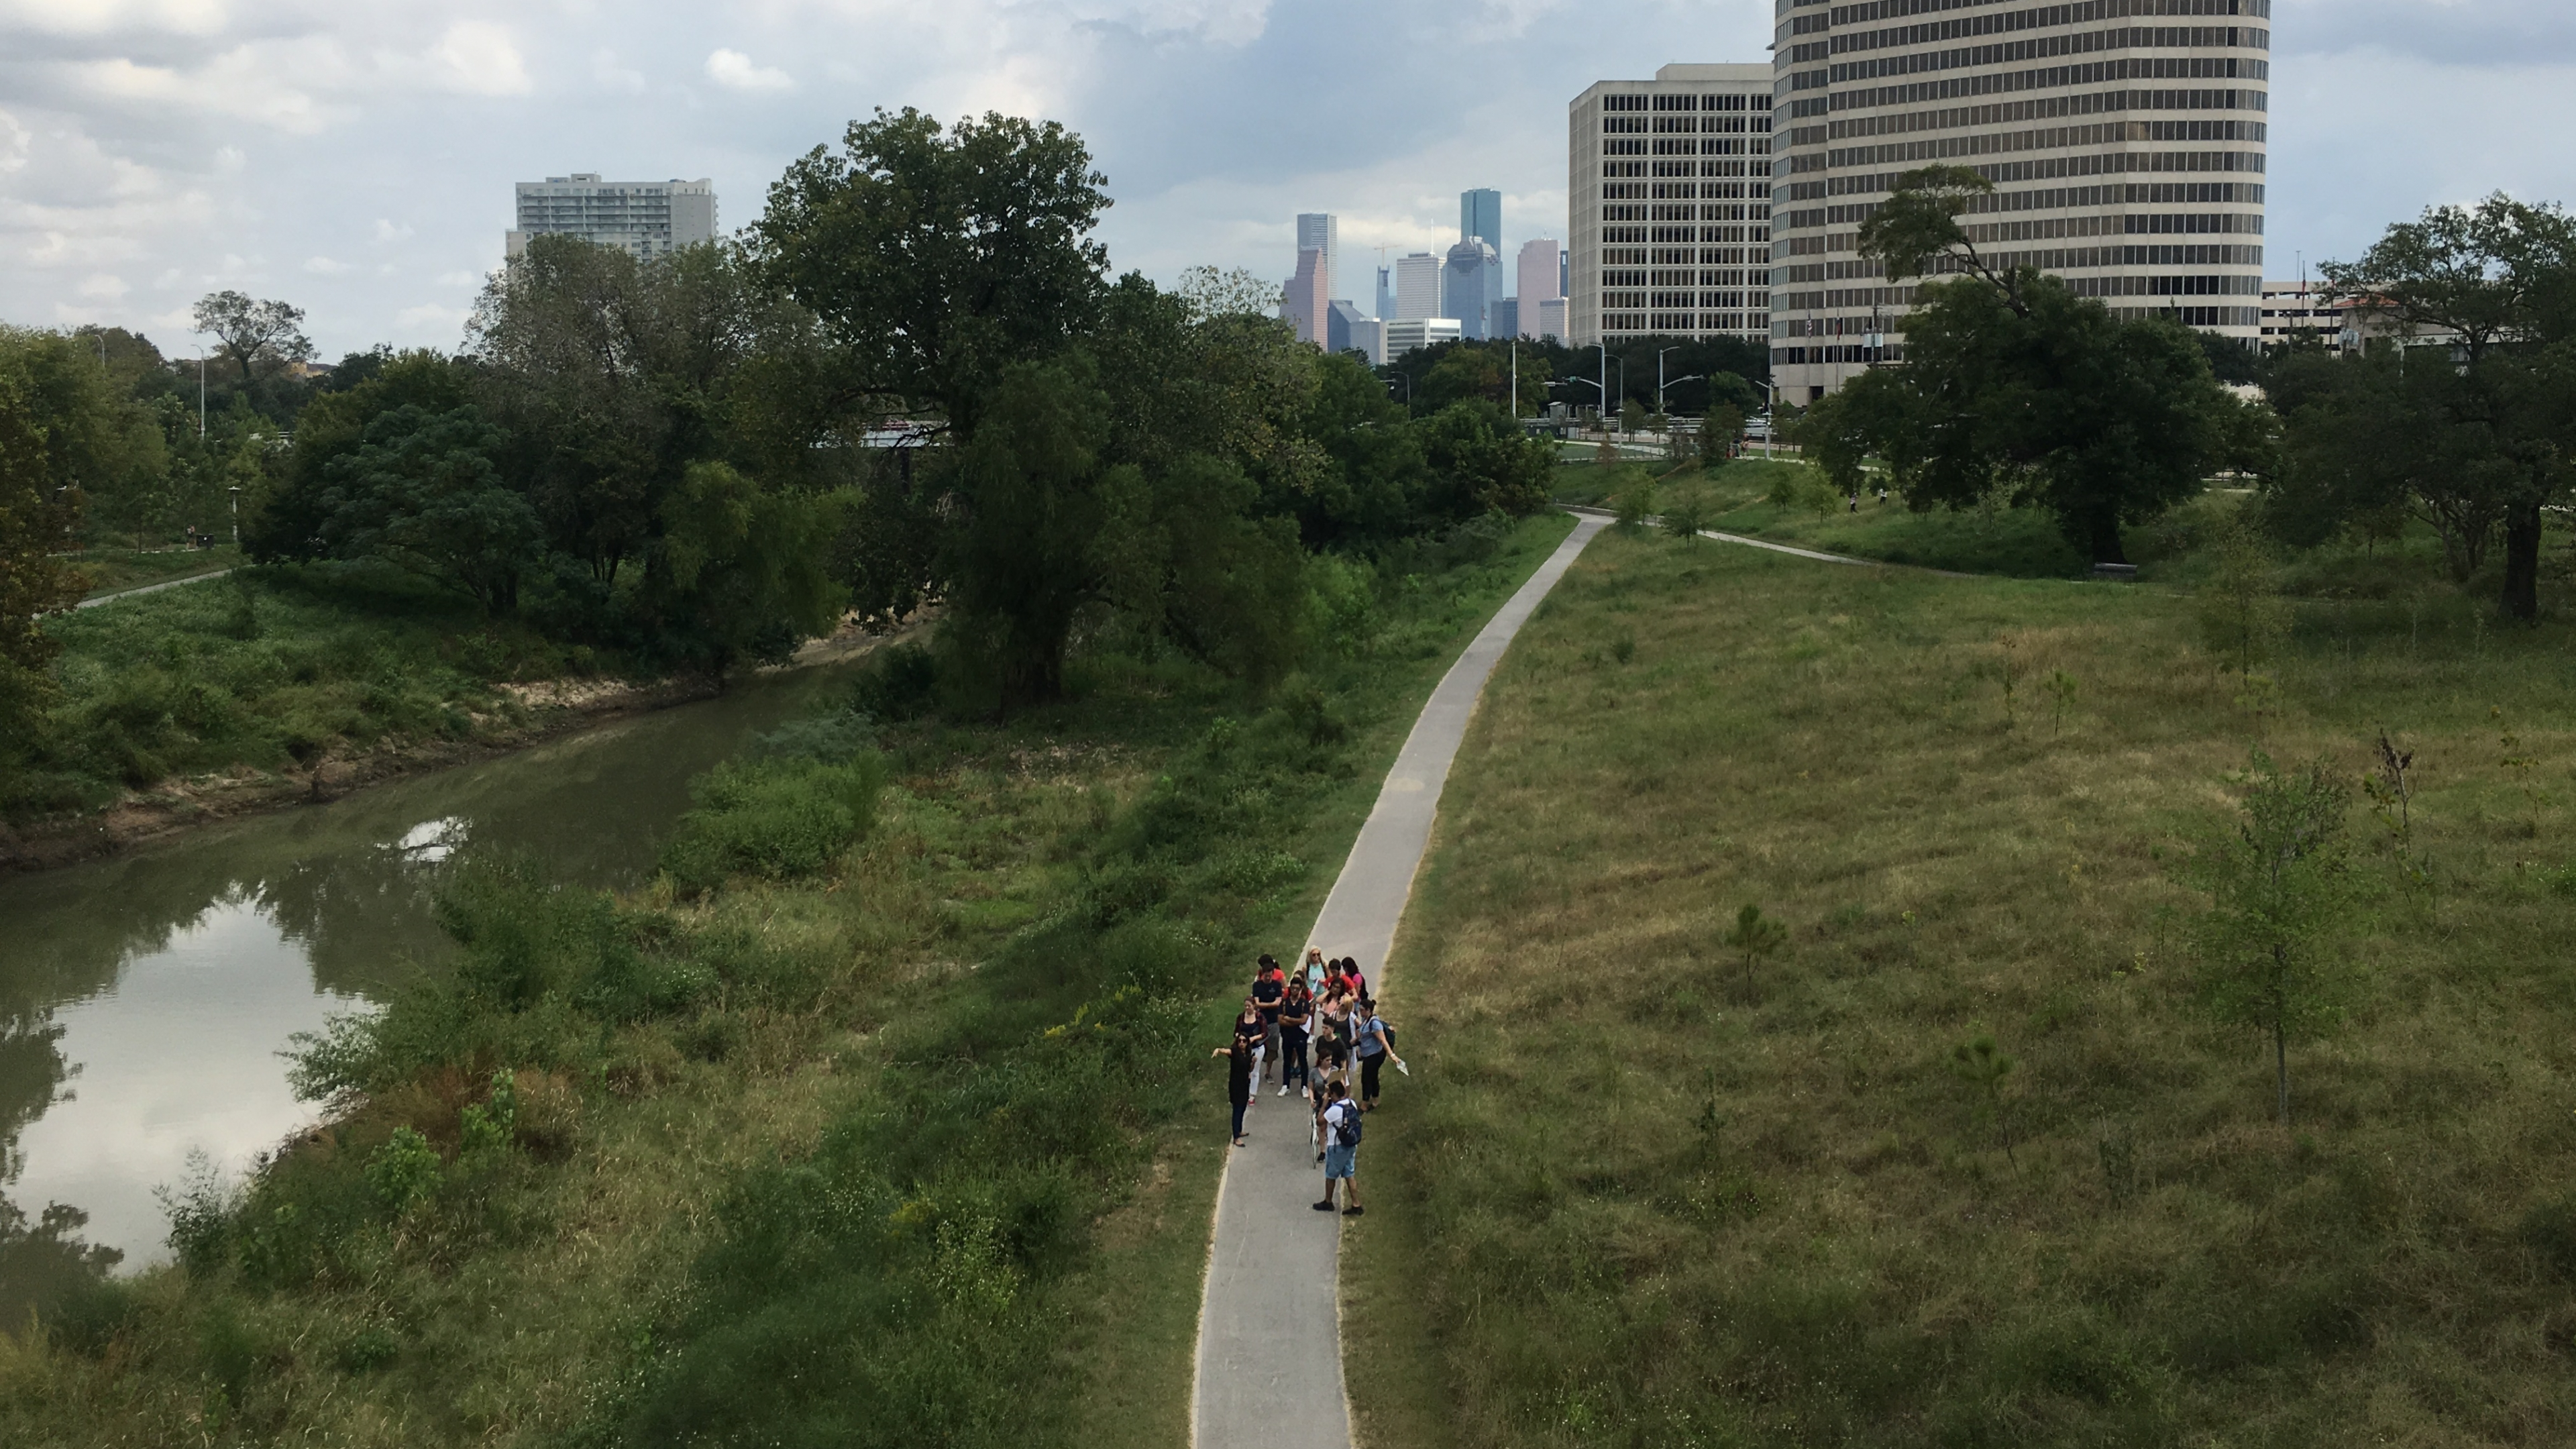 Looking down on children walking on a boardwalk down a grassy field with the high-rises of Houston on the background